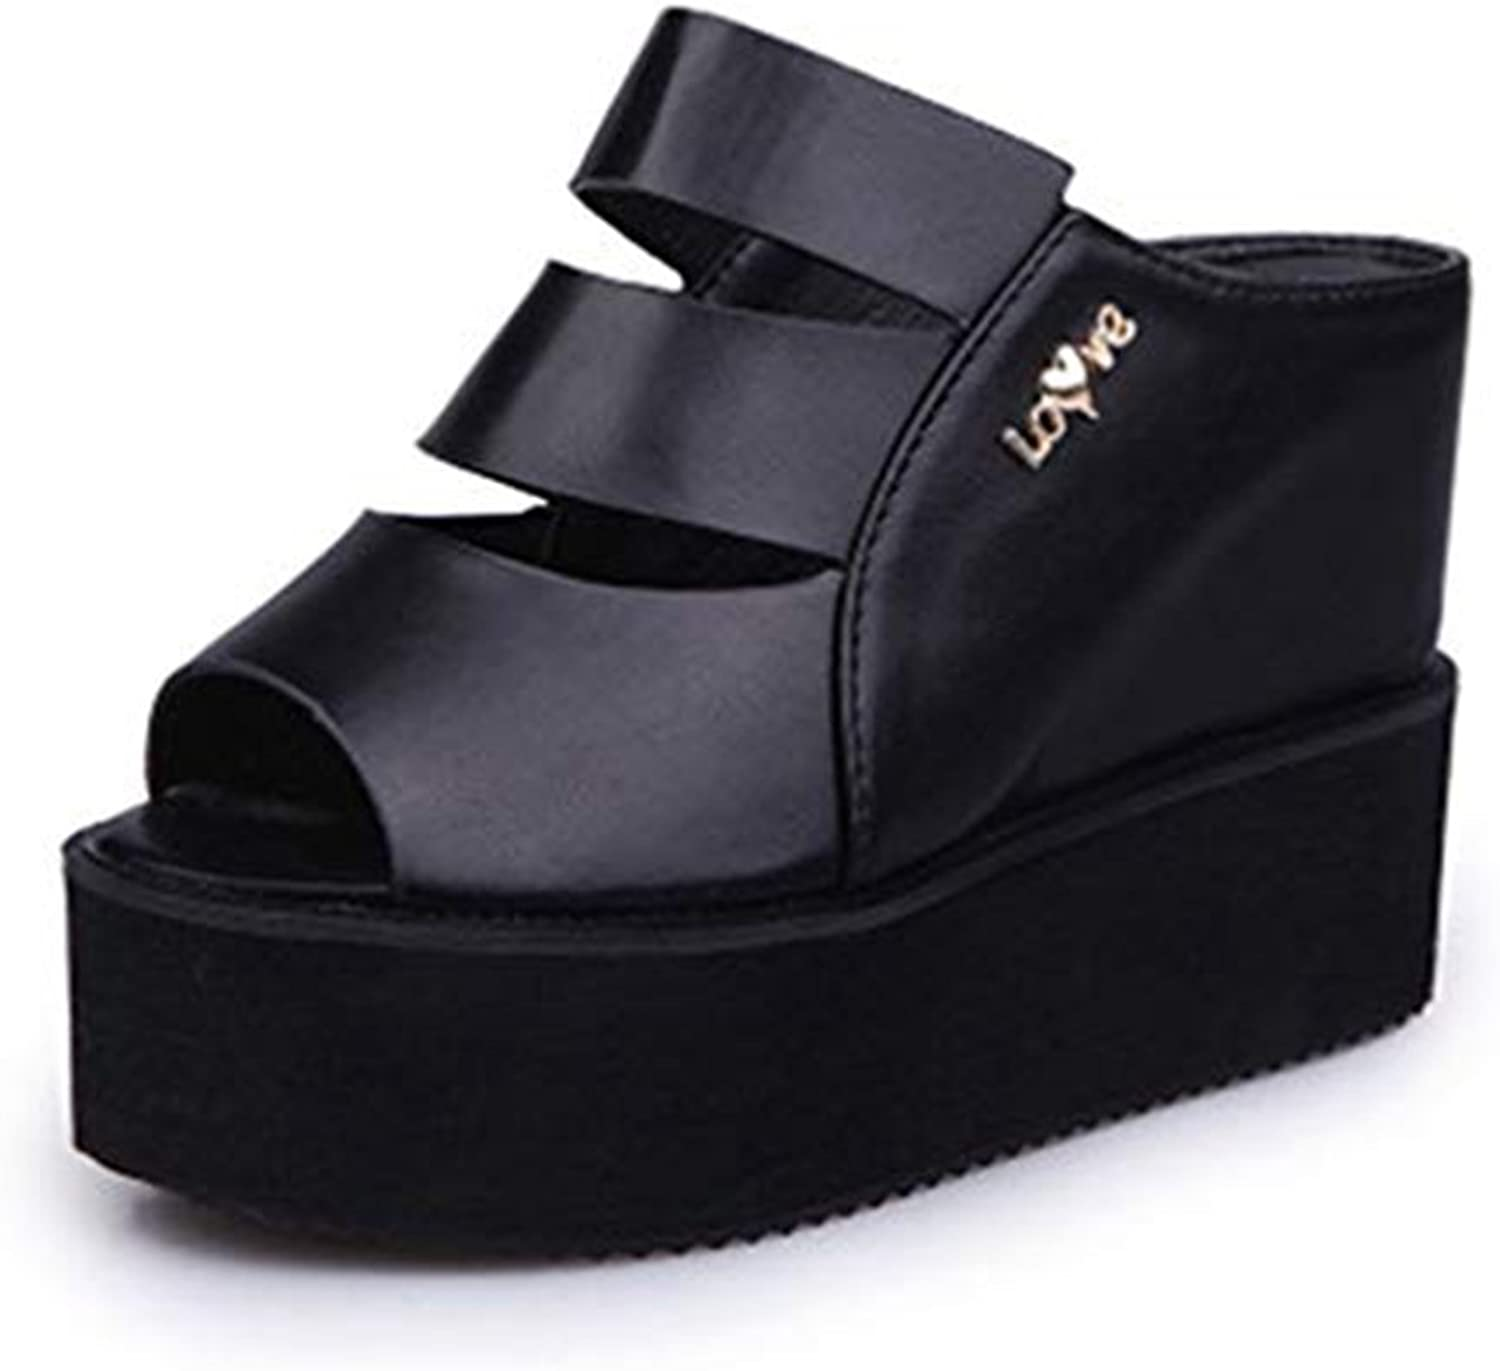 T-JULY Fashion Wedges Leather Hollow Out Peep-Toe Platform Slide Sandals for Women Anti-Slip High Heel Slippers